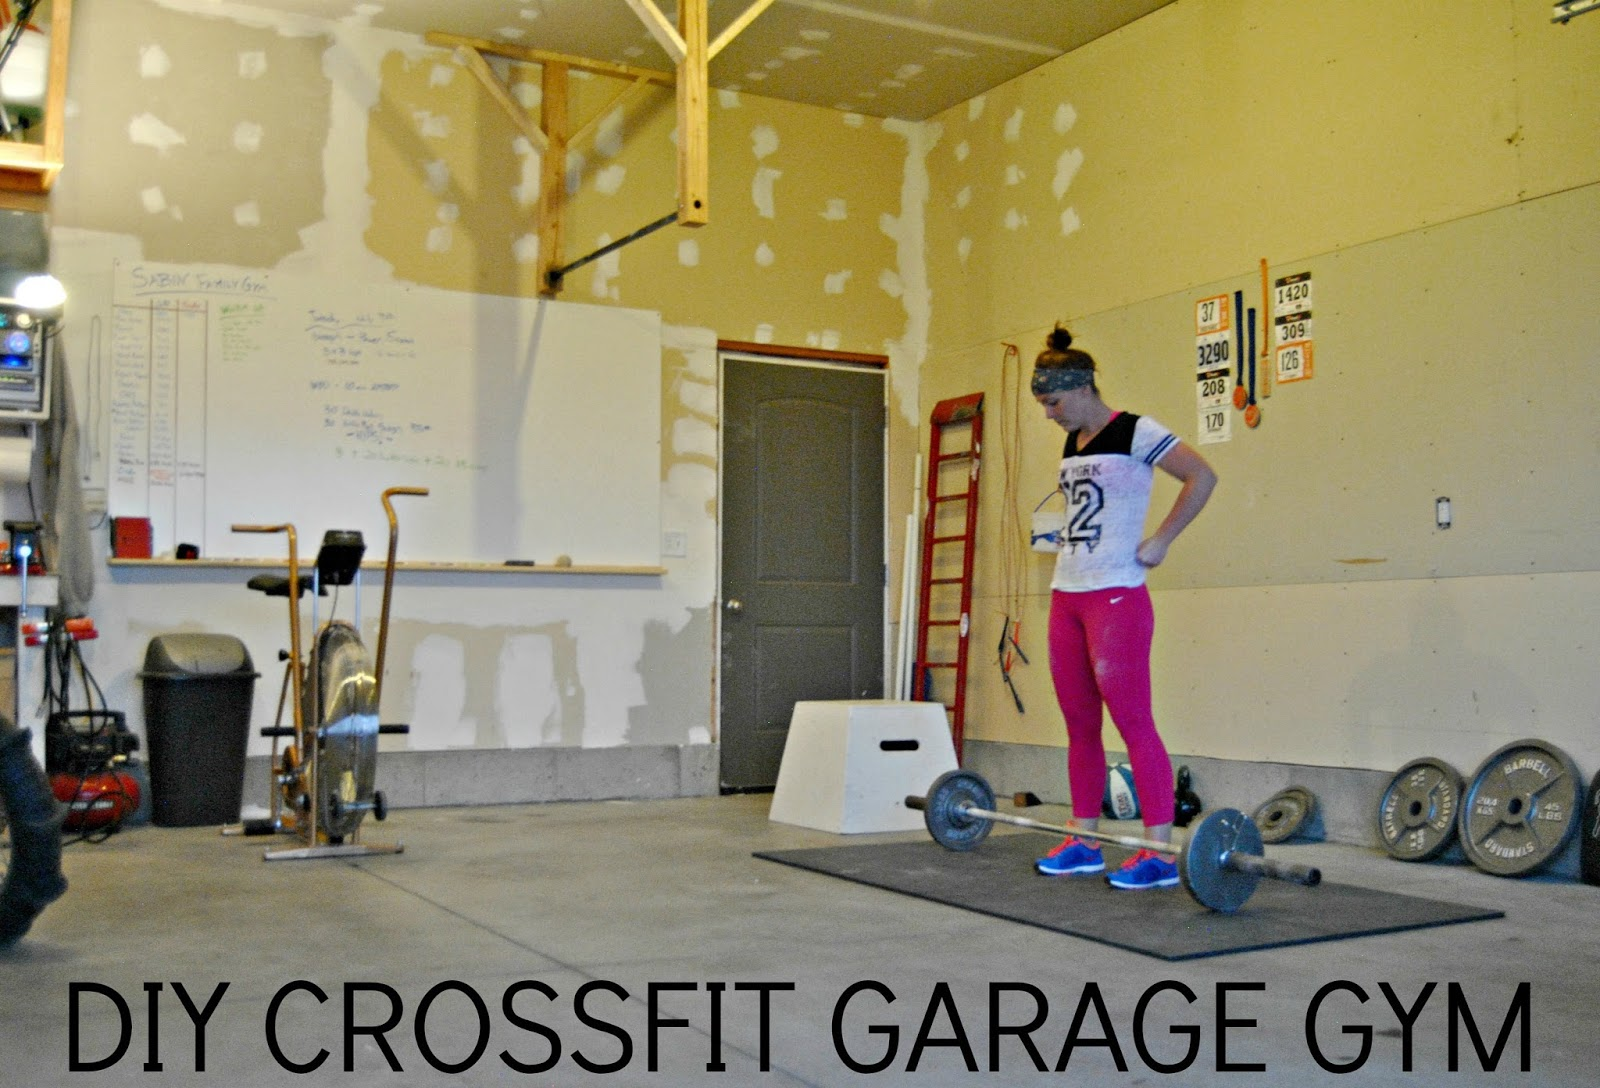 Diy crossfit garage gym: part 1